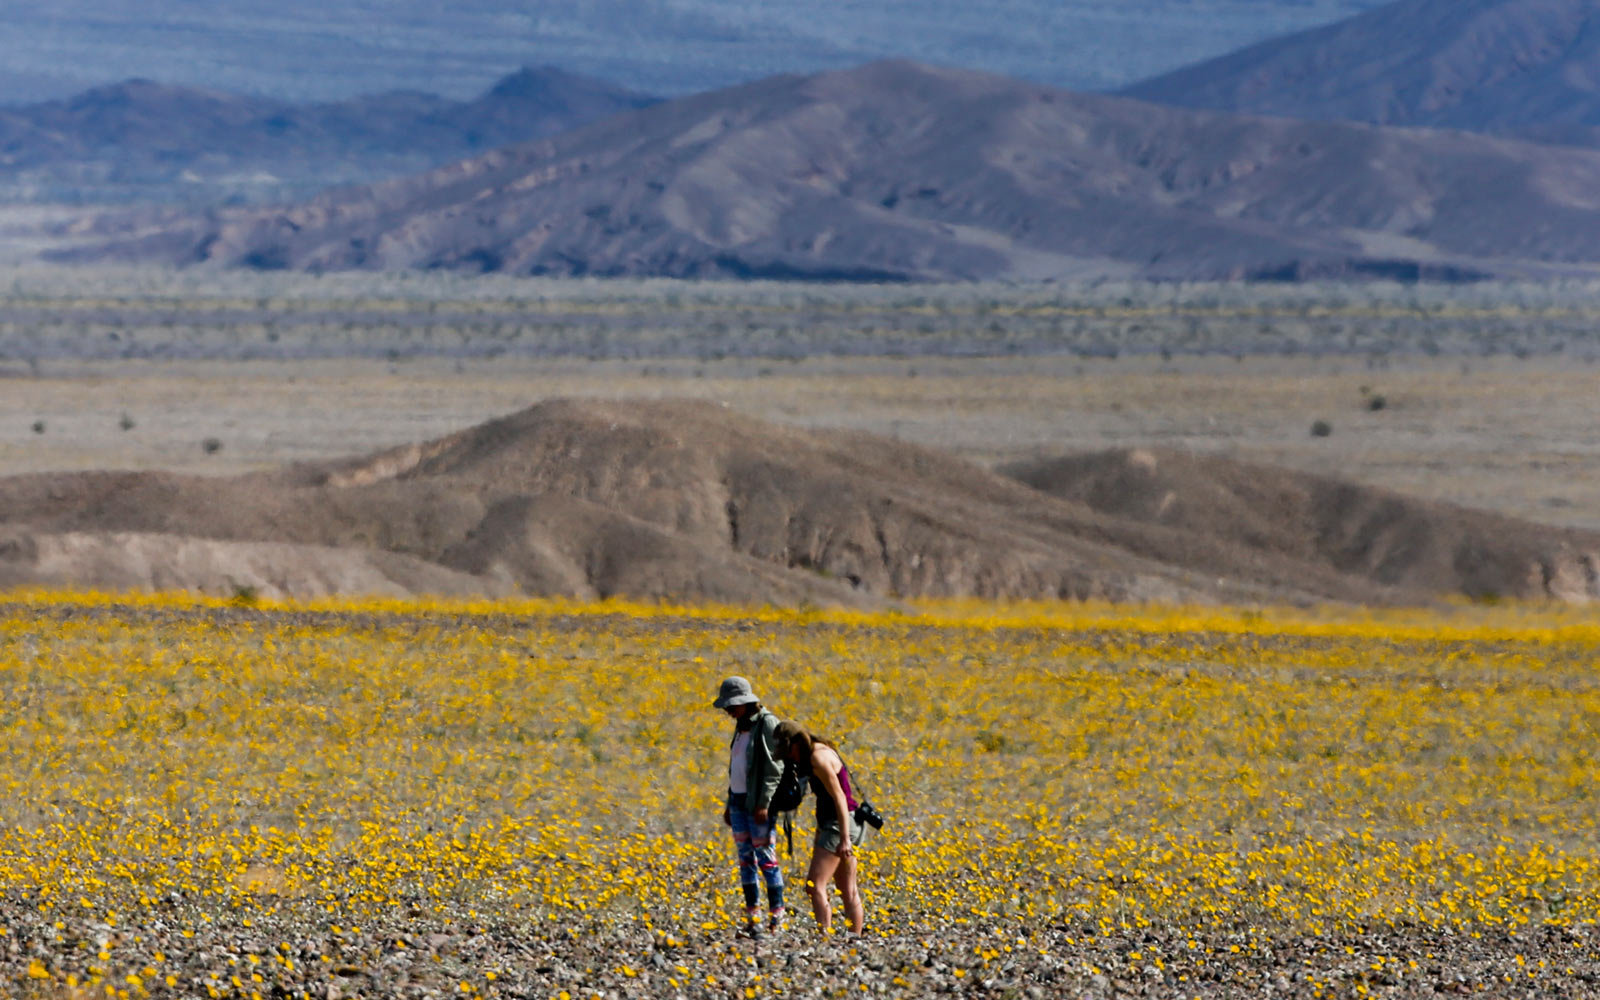 March 2016, Death Valley National Park, Wildflowers, Super Bloom